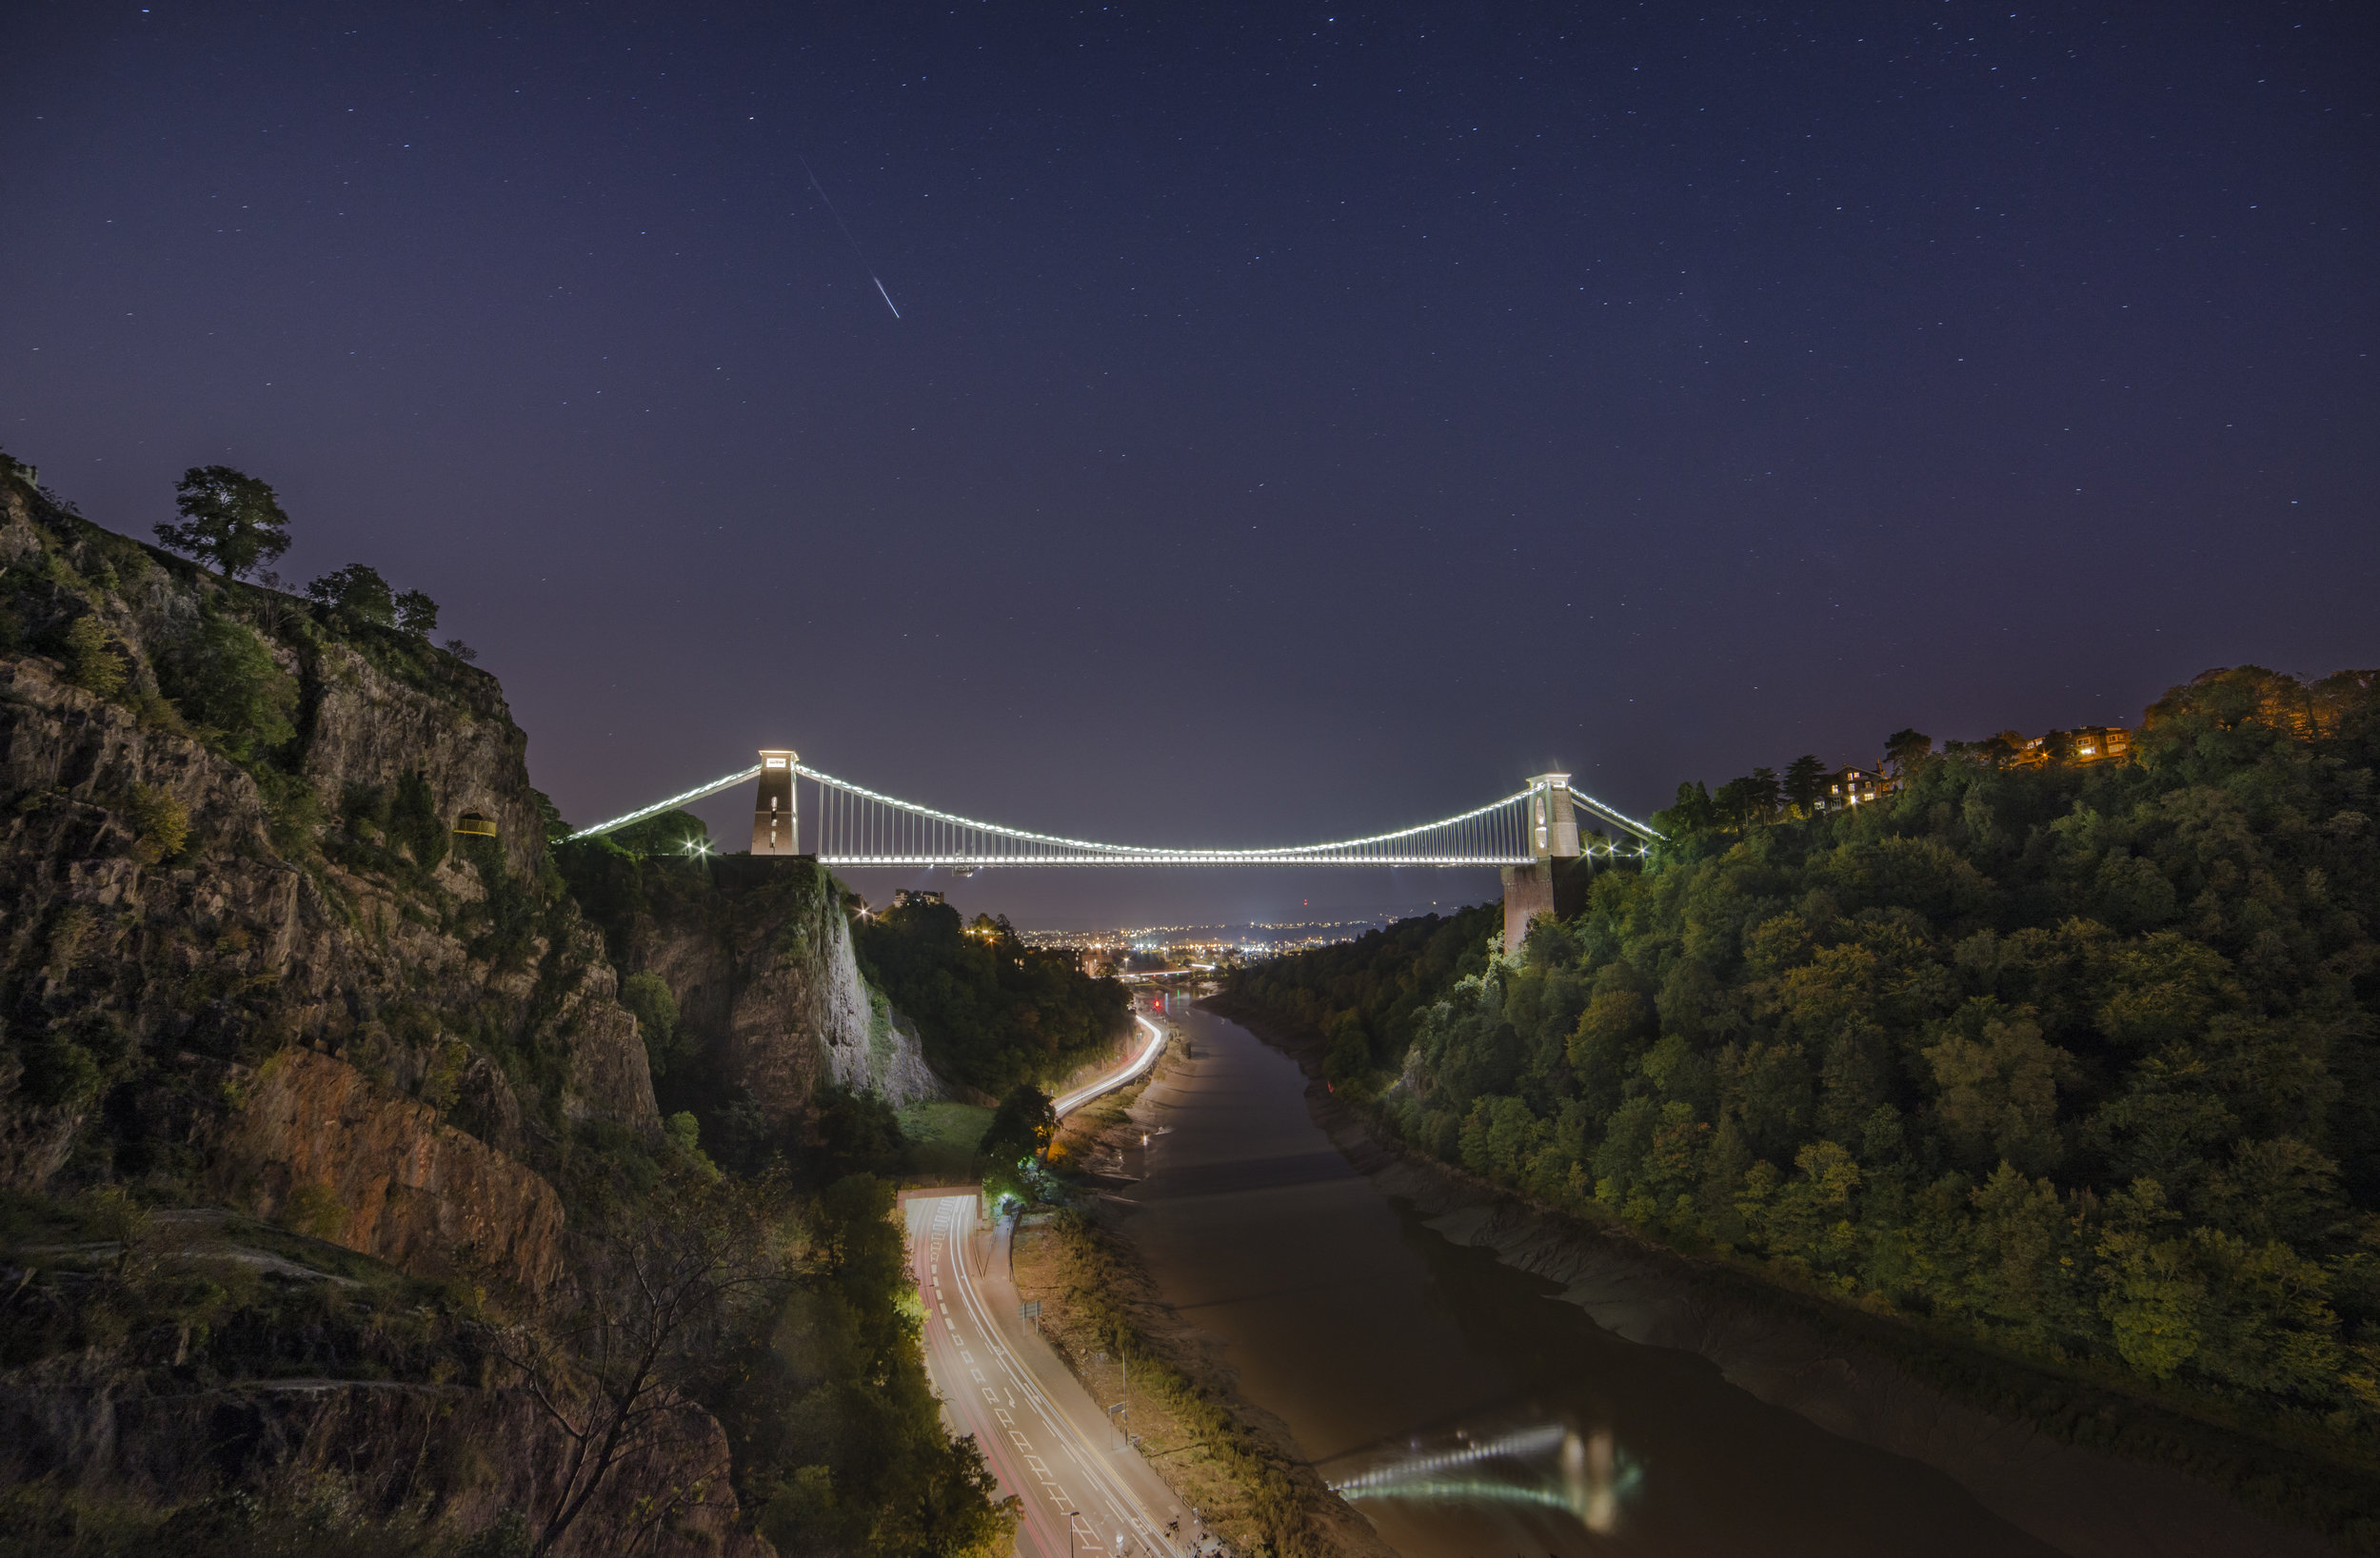 suspension bridge shooting star-2.jpg